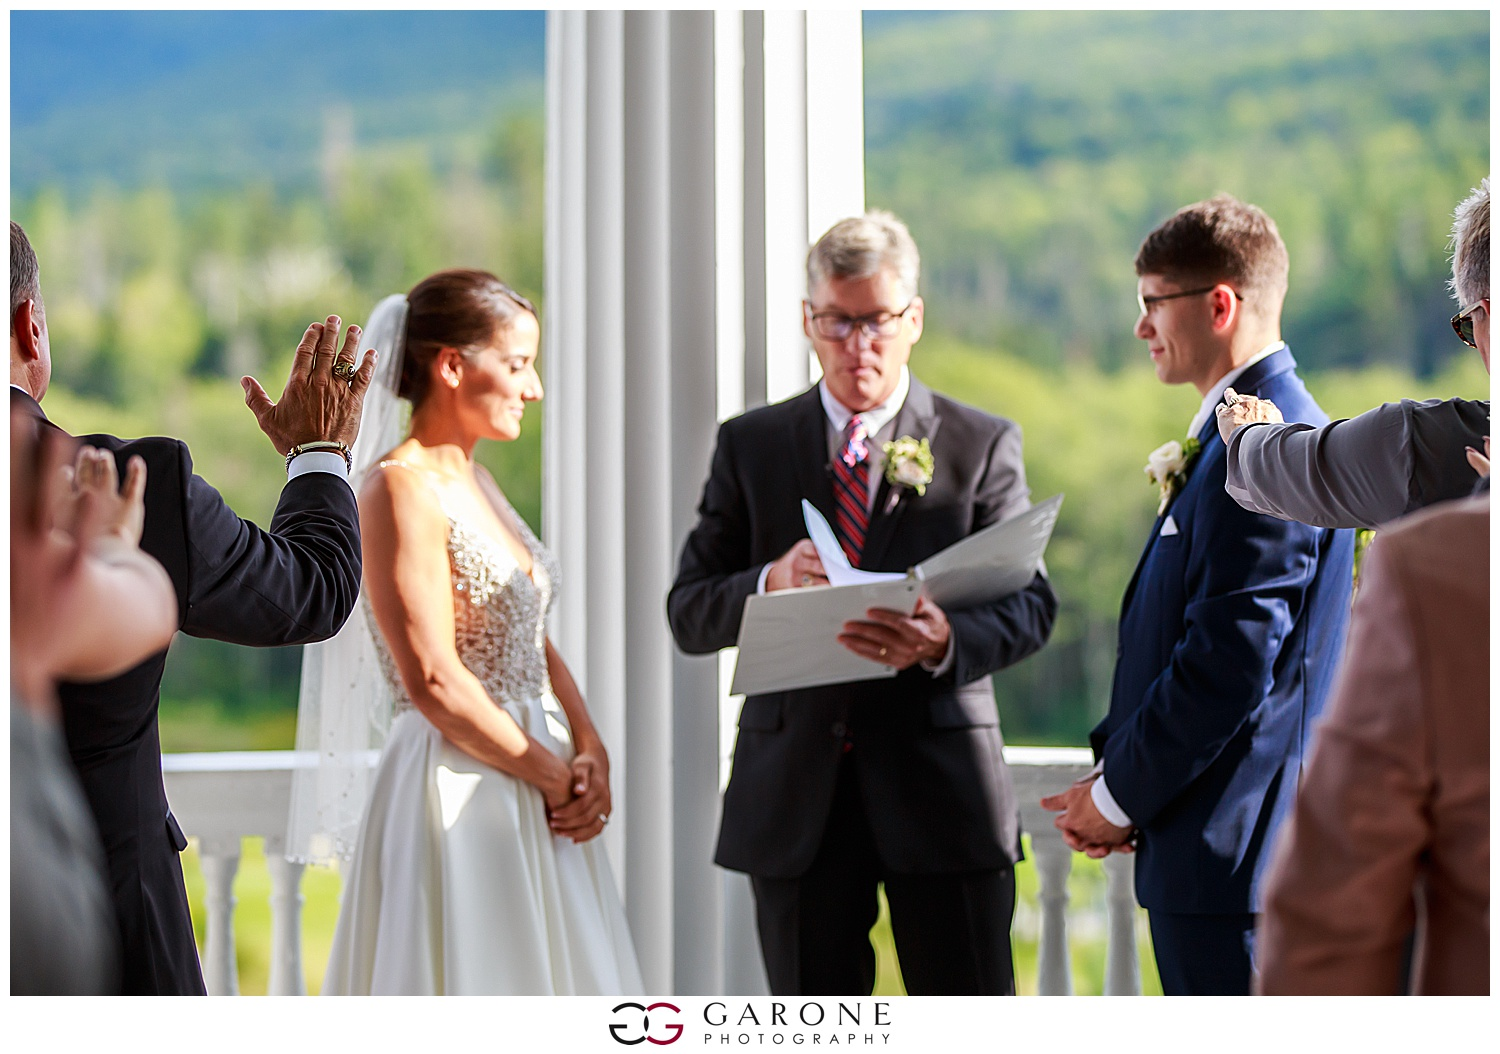 Omni_Mount_Washington_hotel_Wedding_White_Mountain_Wedding_Garone_Photography_0019.jpg